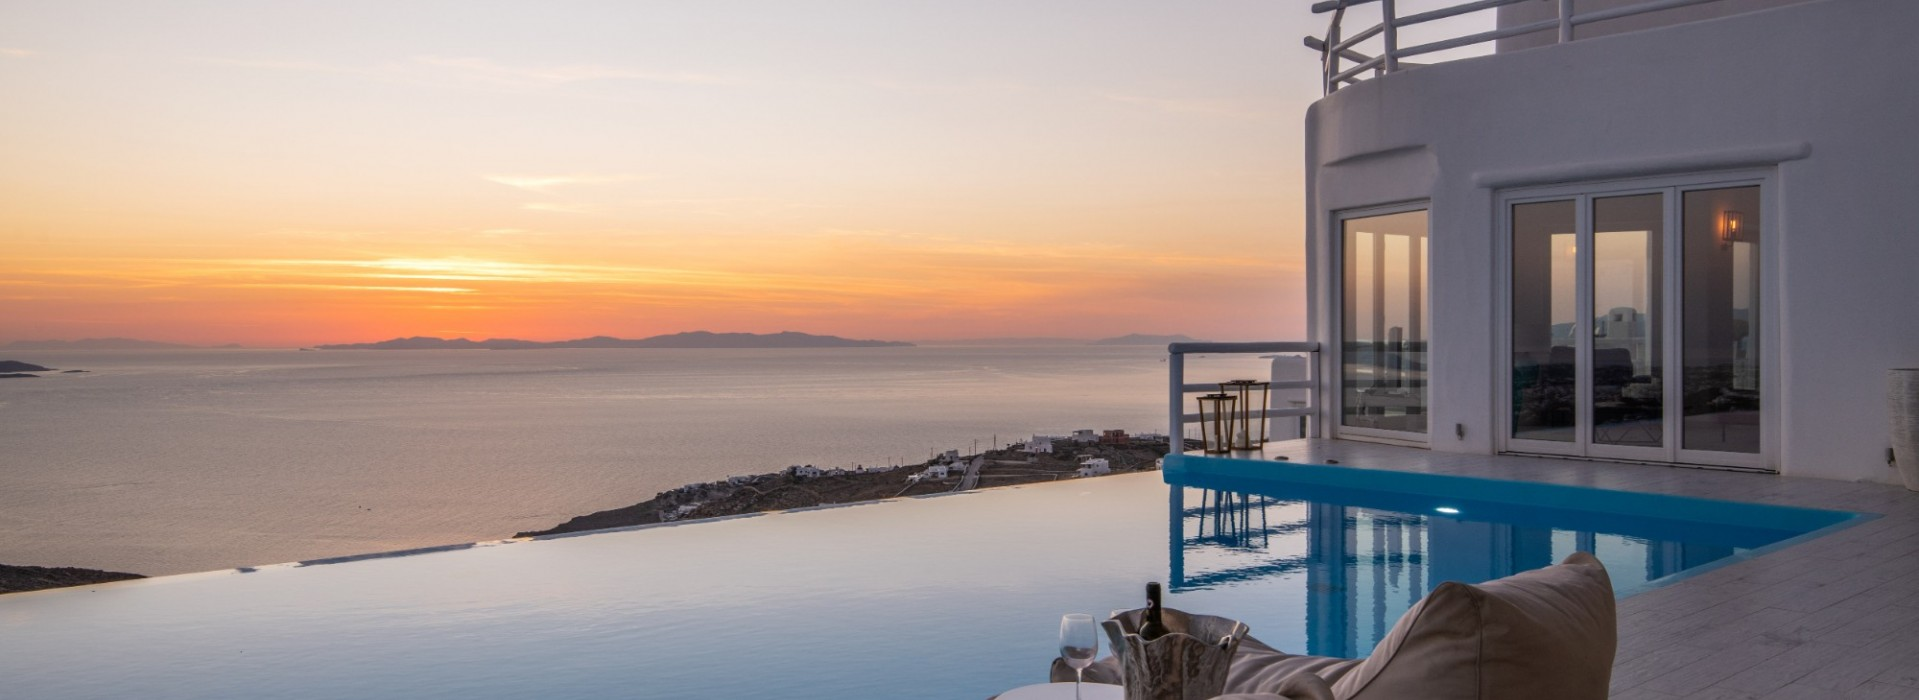 Luxury Mykonos Villas Fabiana 100